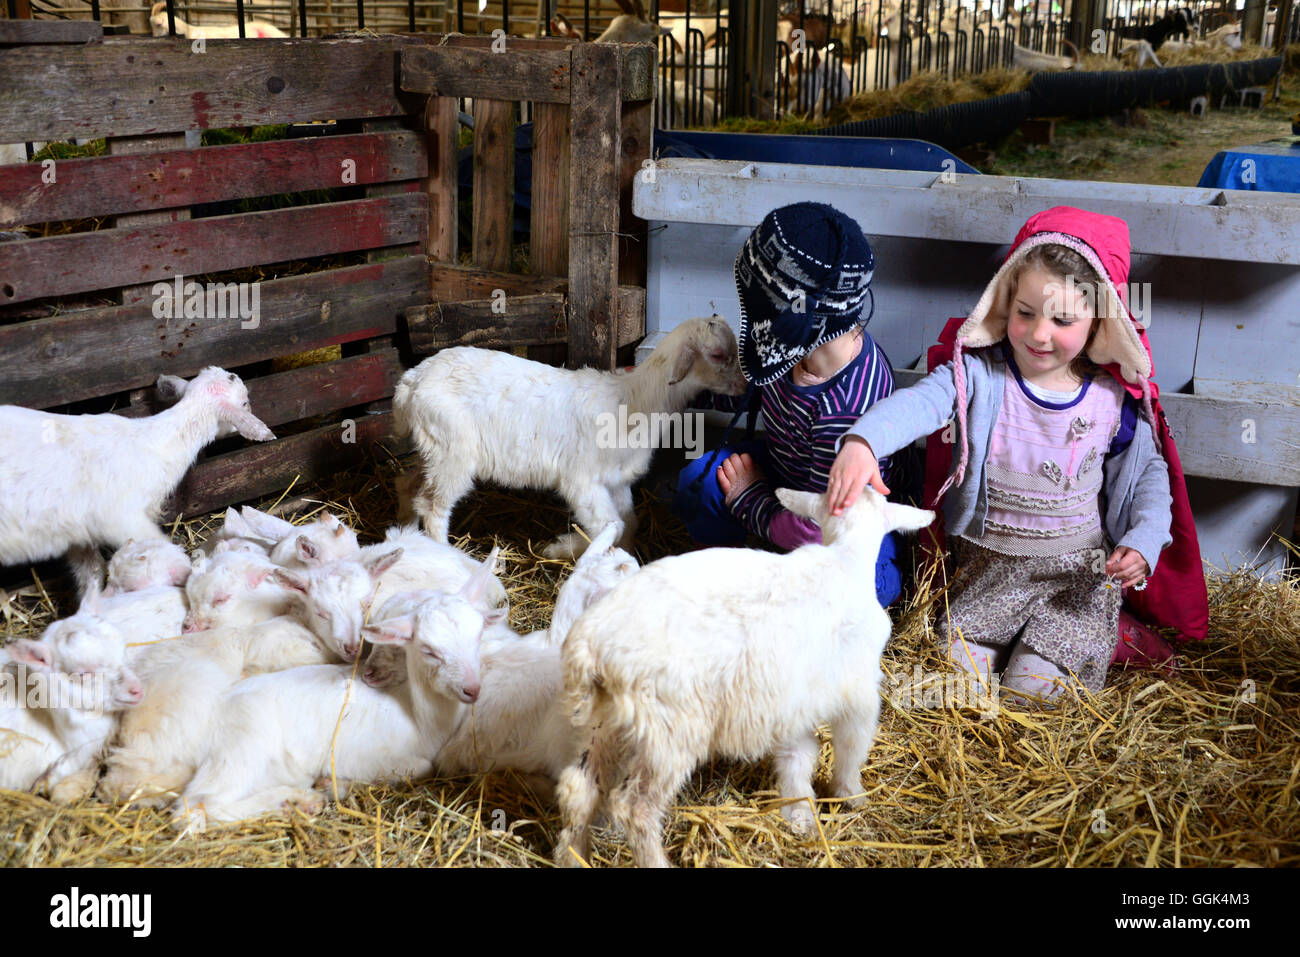 Children at a goat farm in Clare, West coast, Ireland - Stock Image